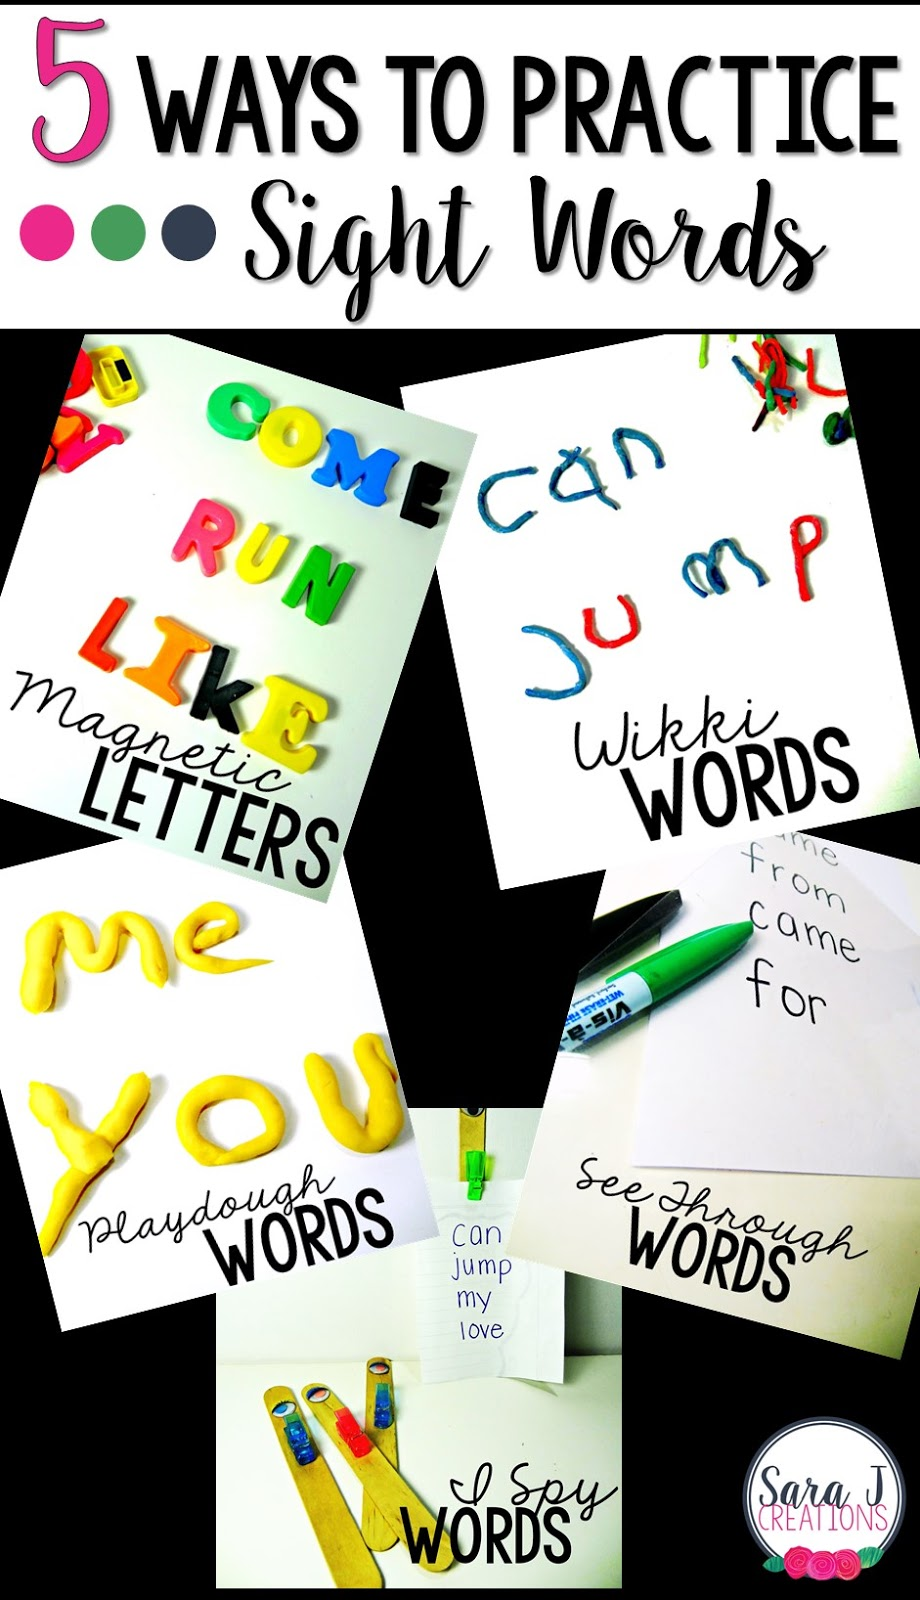 Five ideas for practicing sight words in a hands on fun way! Also includes free printables!